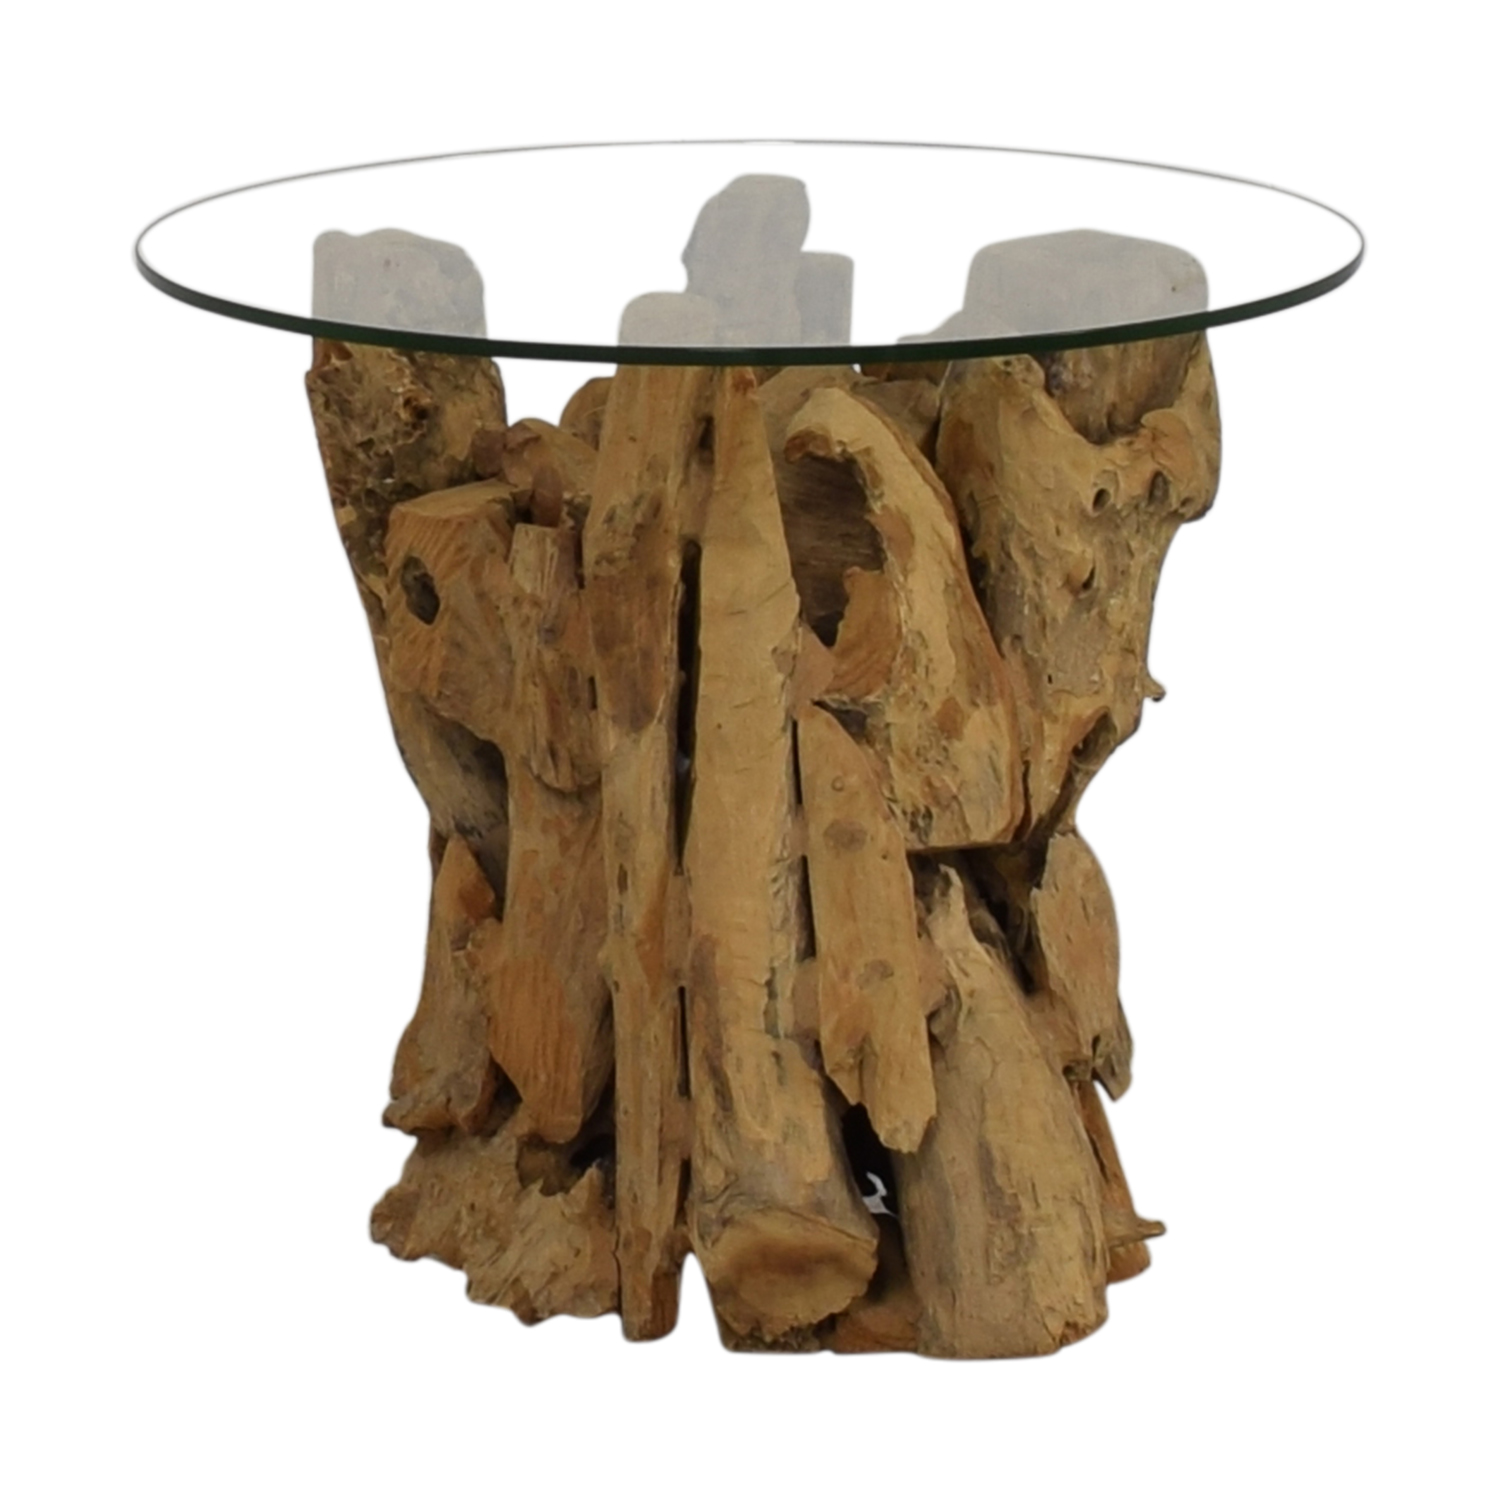 48 off crate barrel crate barrel driftwood end table with round glass top tables